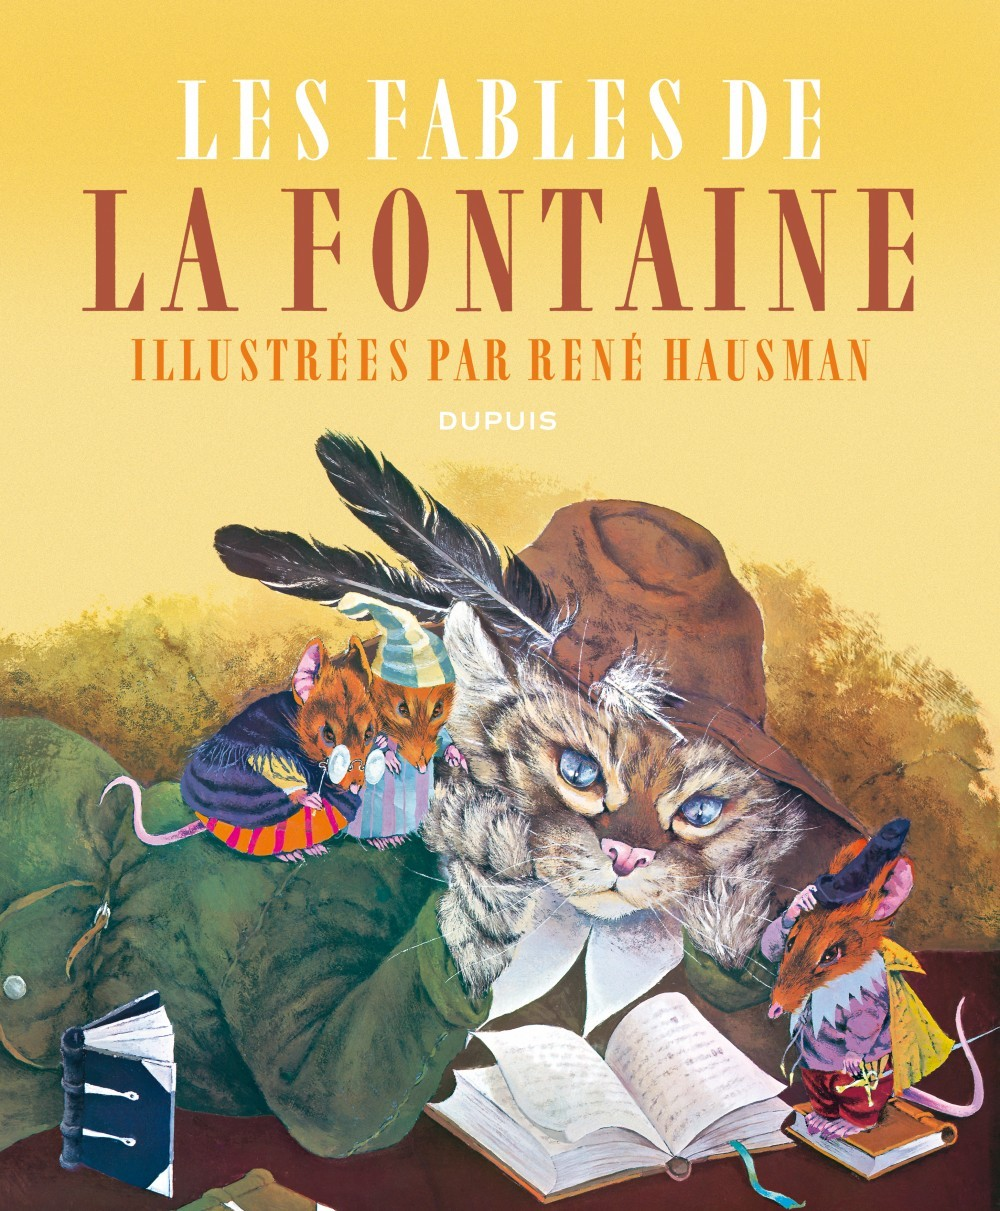 FABLES DE LA FONTAINE - LUXE T1 FABLES DE LA FONTAINE (LES) (VERSION LUXE)